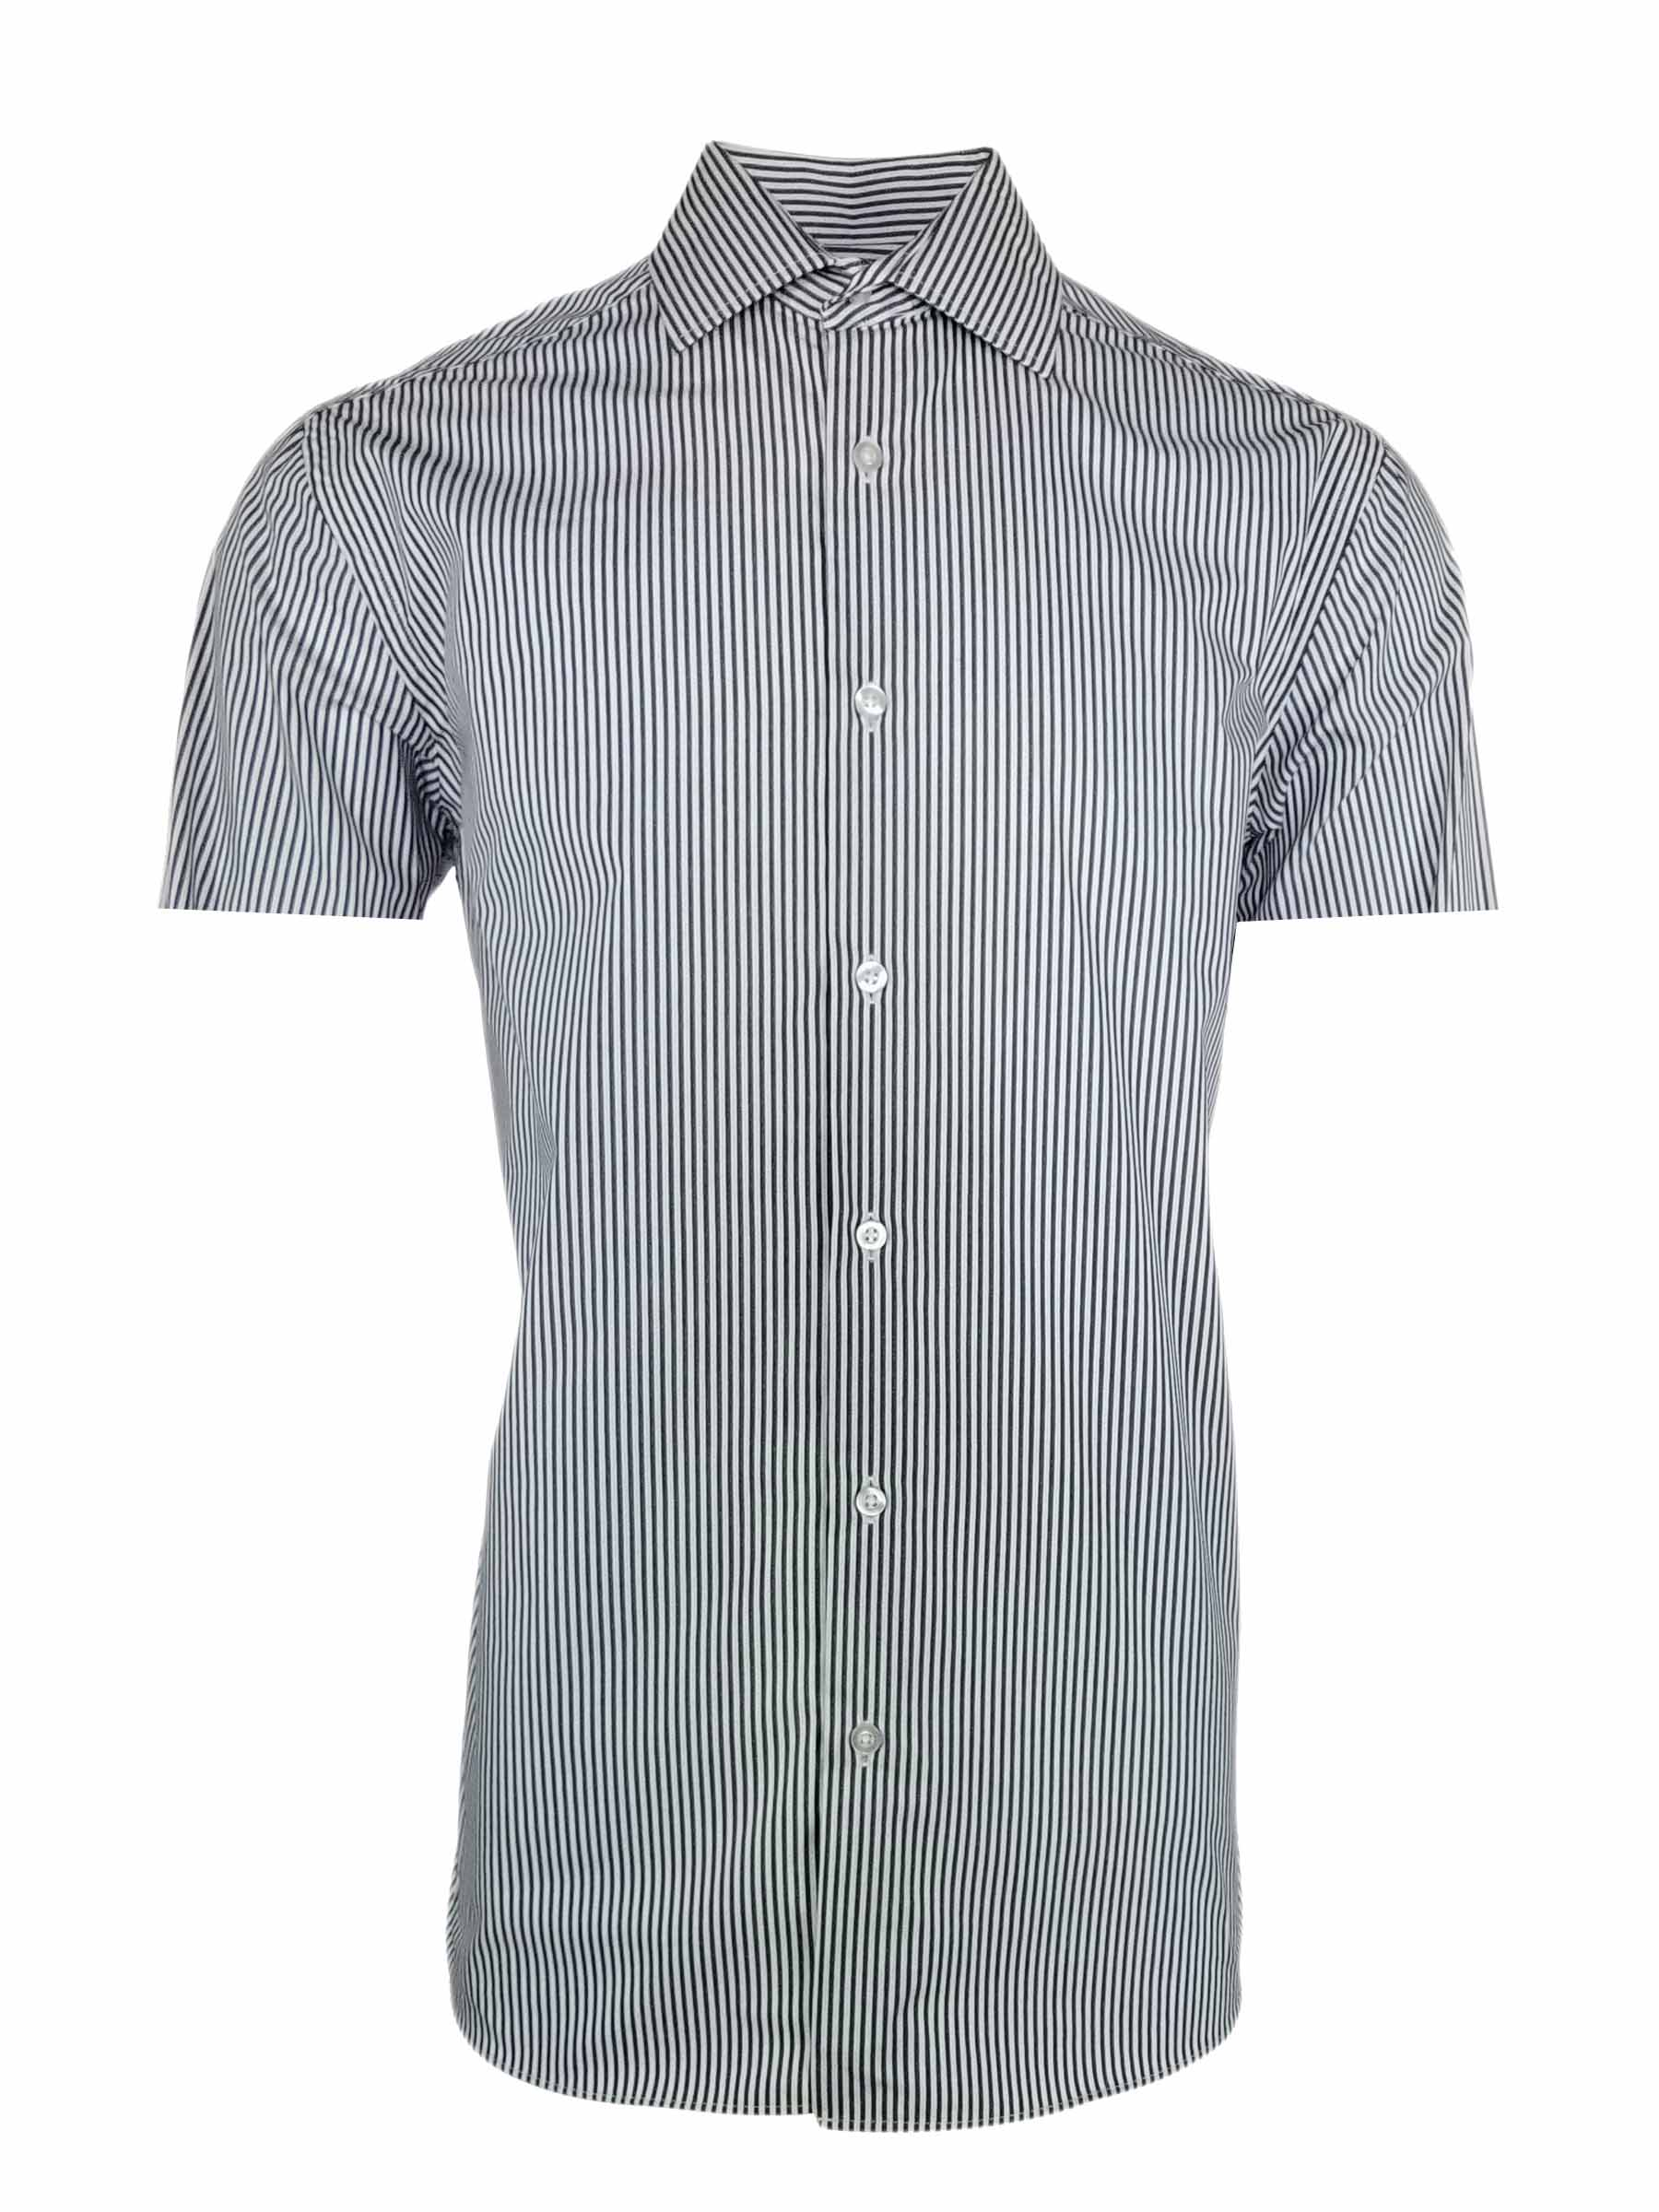 455a55052c205a Home Products Men's Milan Shirt – Black and White Stripe Short Sleeve. 🔍.  AddThis Sharing Buttons